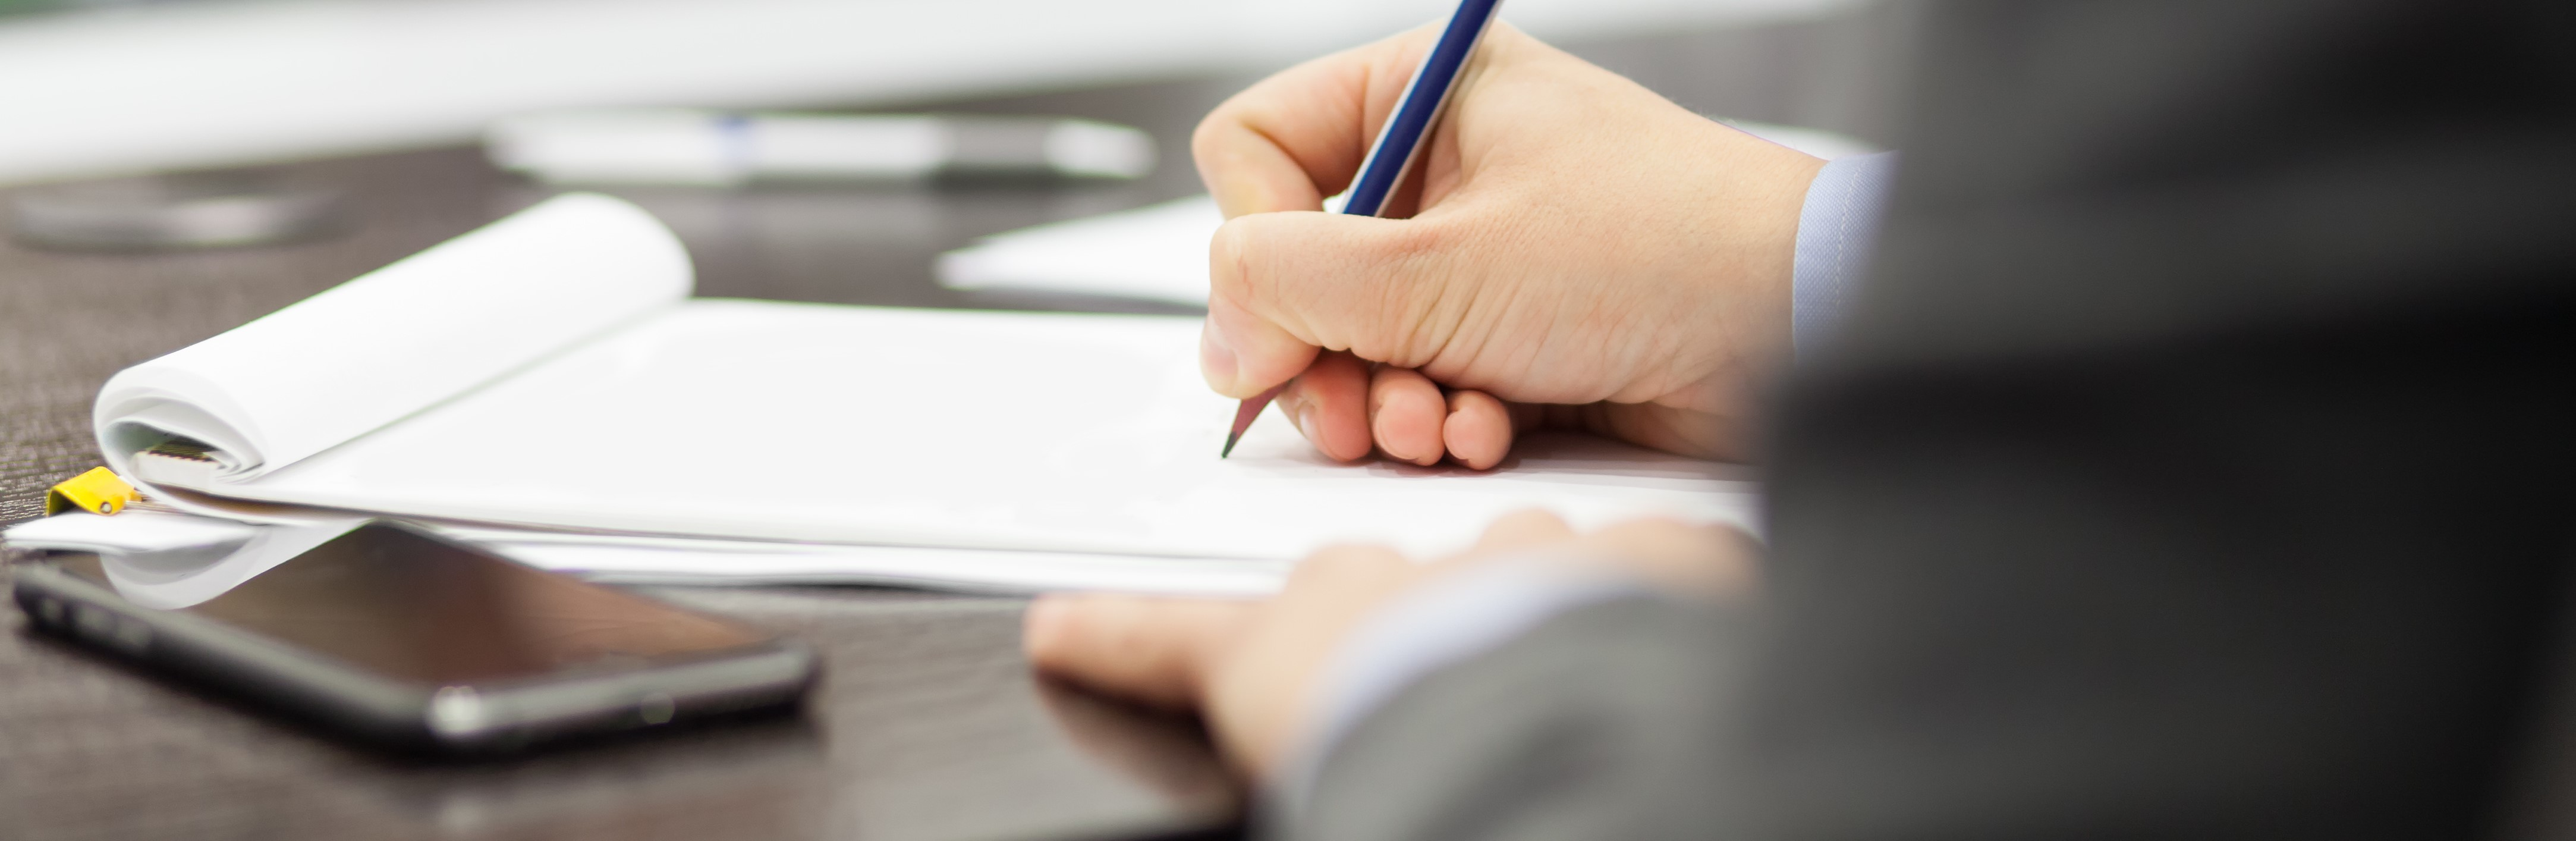 How to Take Accurate Meeting Minutes   Lorman Education Services